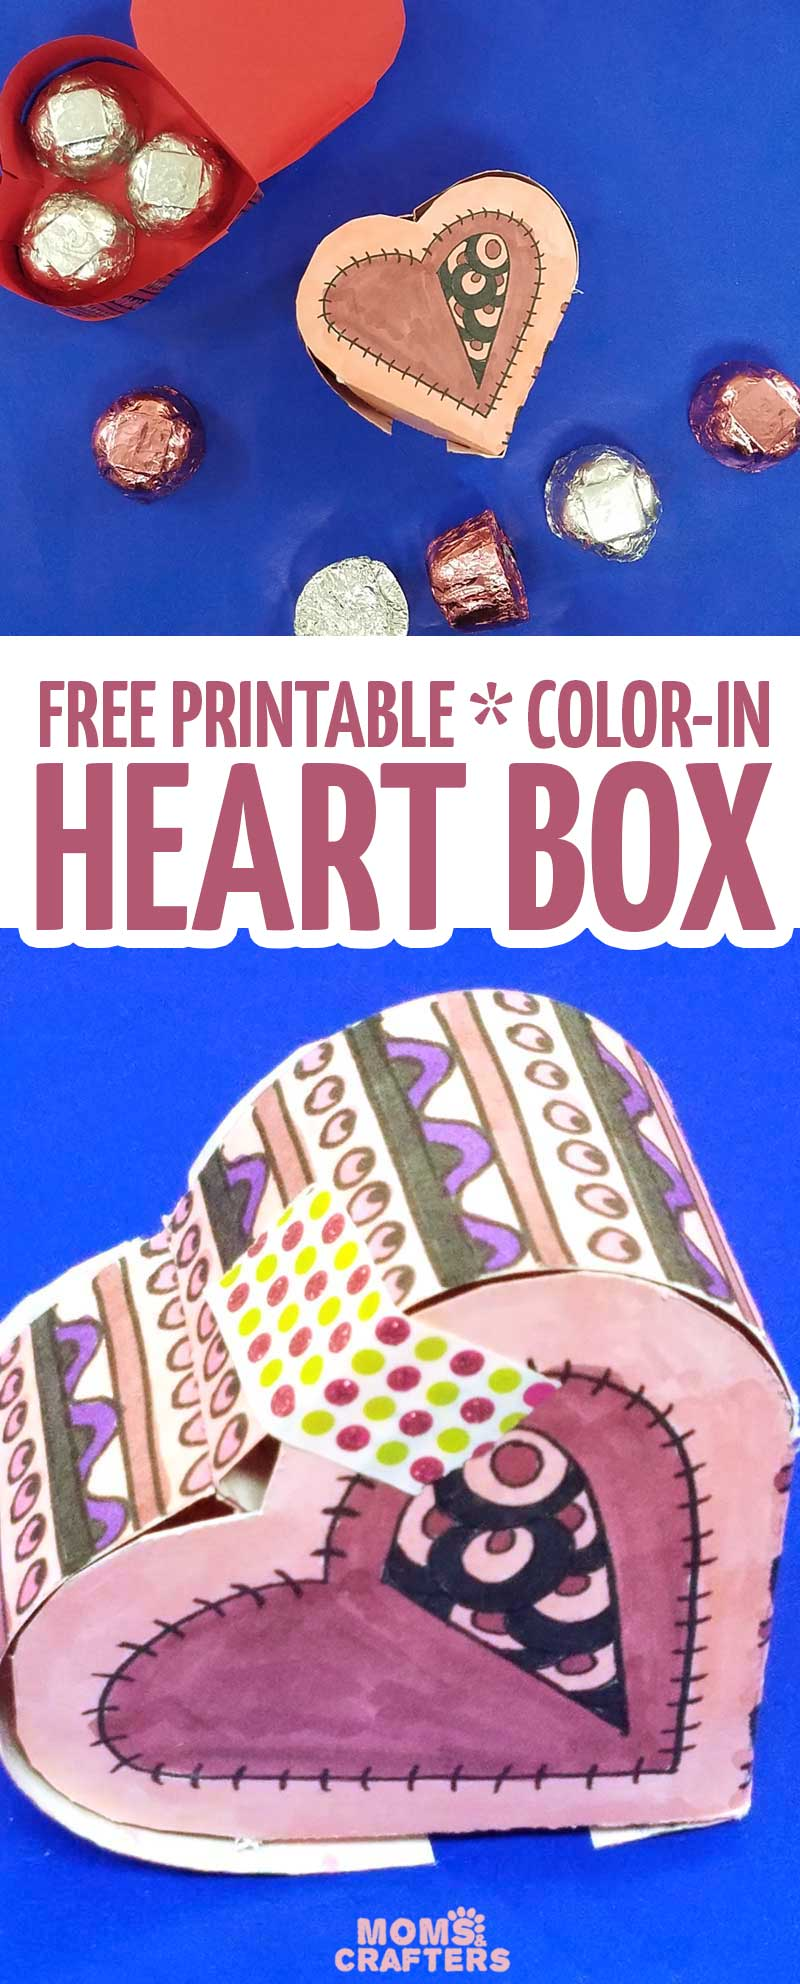 Grab The Free Printable Template And Craft This Adorable Heart Box For Valentines Day